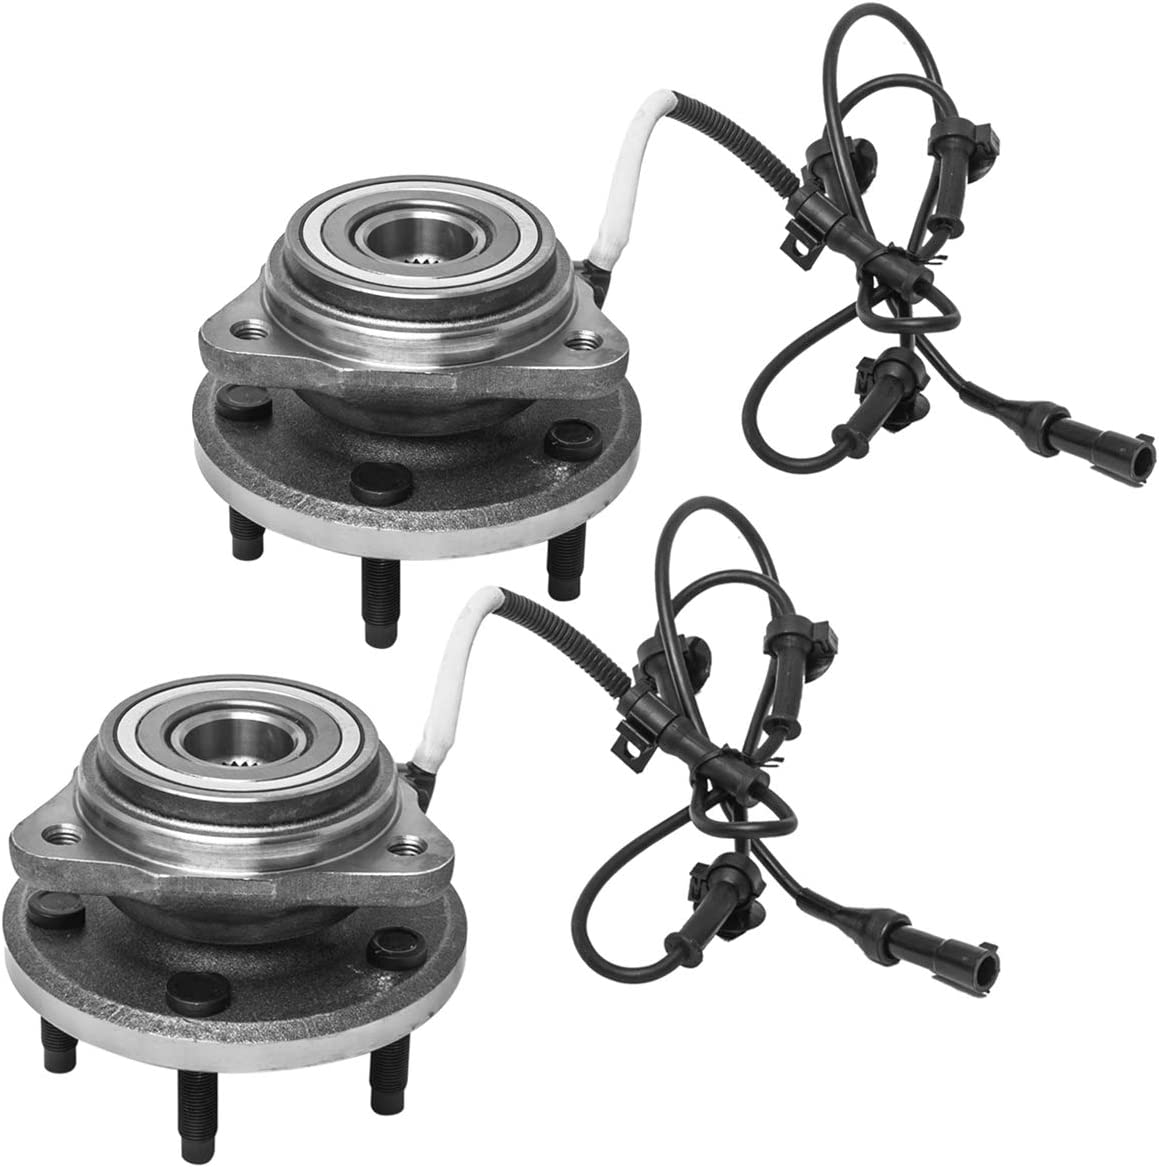 4WD Models Pair Front Wheel Hub and Bearing Assembly AUQDD 515052 x2 5 Lug W//ABS Compatible With 2003 04 05 06 07 08 2009 Mazda B4000 Ford Ranger 03-05 Explorer Sport Trac Exc. Explorer Sport